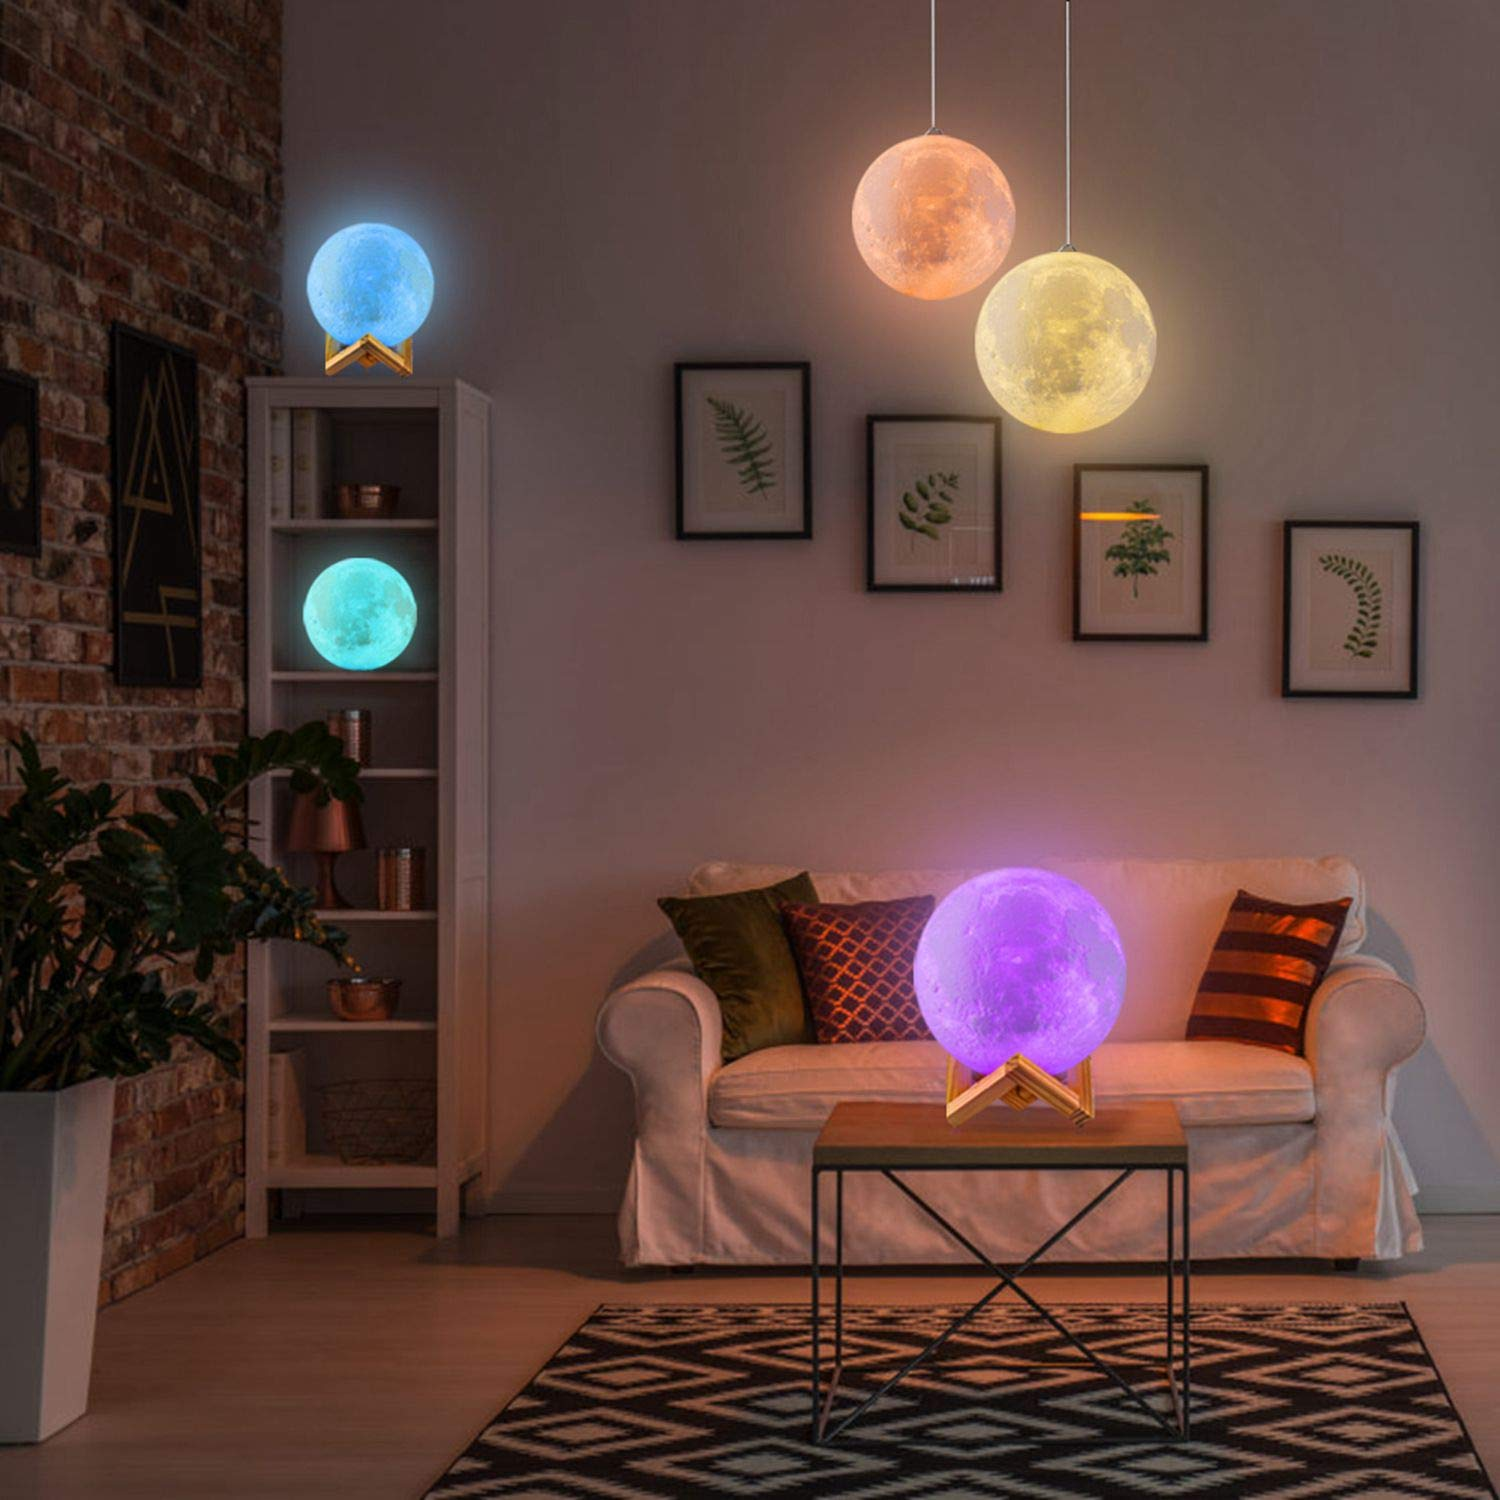 16 16 Colors 3D Printing Moon Light with Remote Control /& Wooden Base B LOGROTATE Magnetic Levitating Moon Lamp 6 in Night Light for Home Office Decor Creative Gift for Christmas and New Year